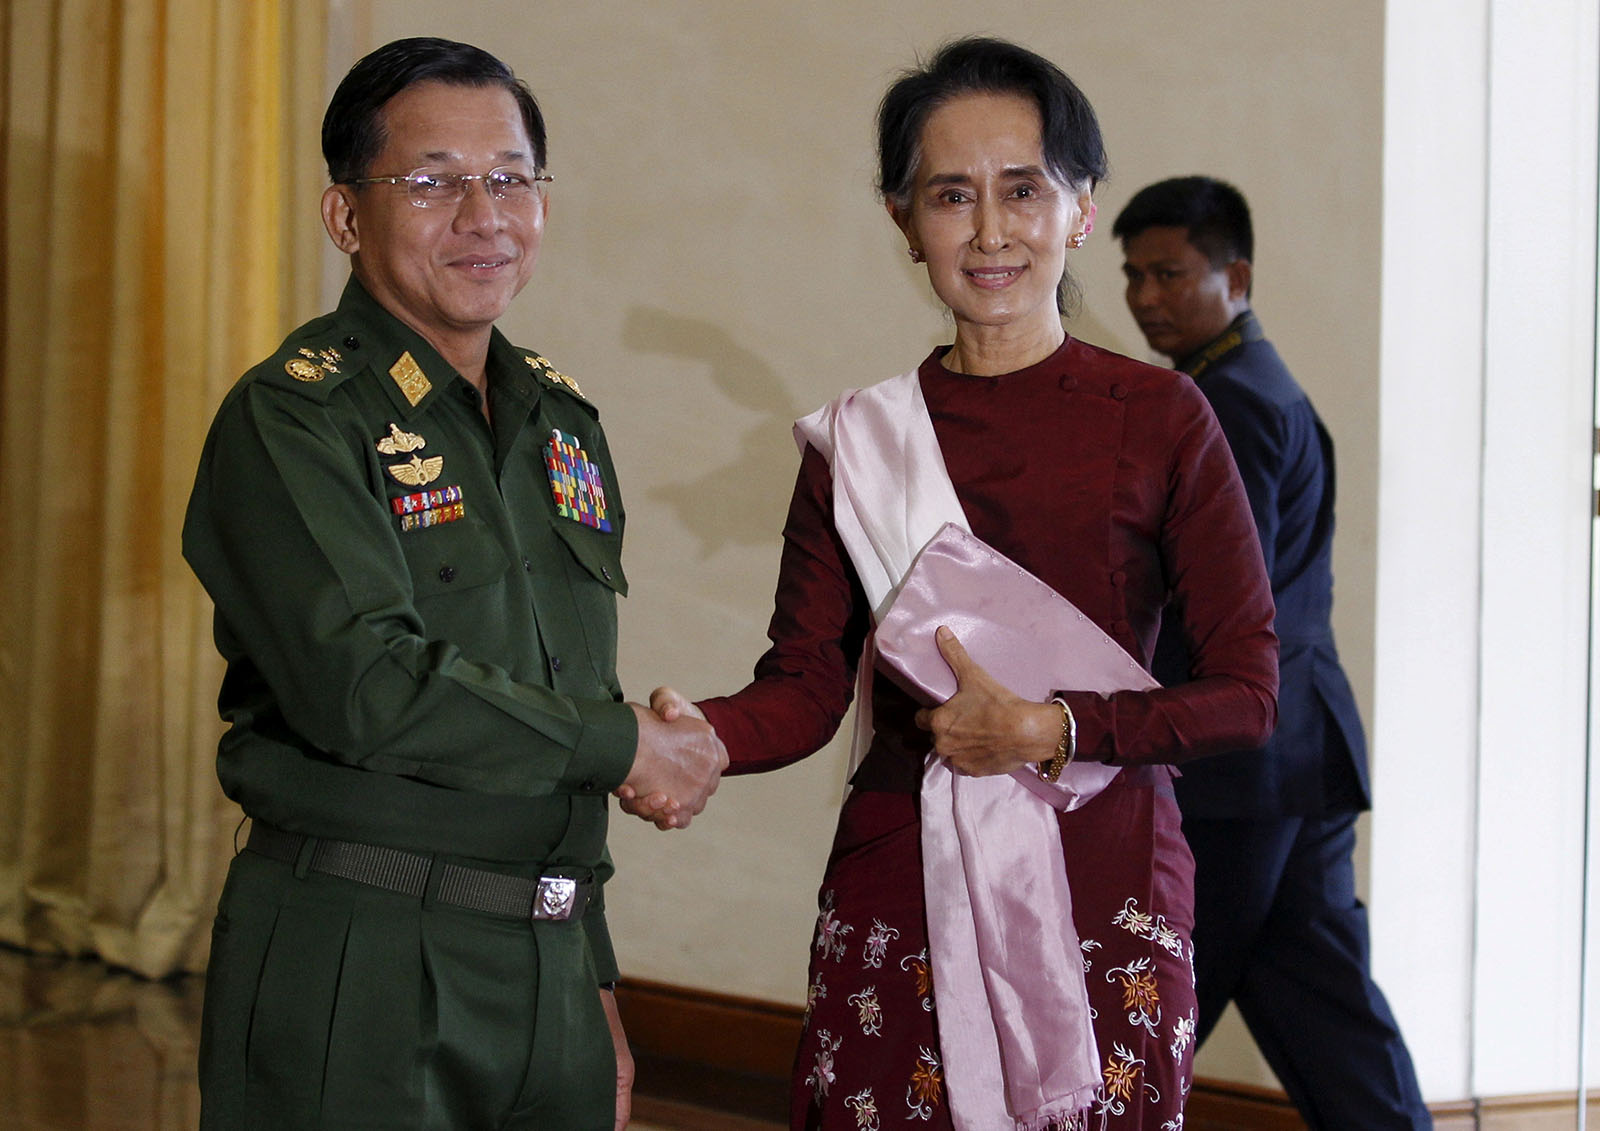 Senior General Min Aung Hlaing (L), Myanmar's commander-in-chief, shakes hands with National League for Democracy (NLD) party leader Aung San Suu Kyi before their meeting in Hlaing's office at Naypyitaw December 2, 2015.